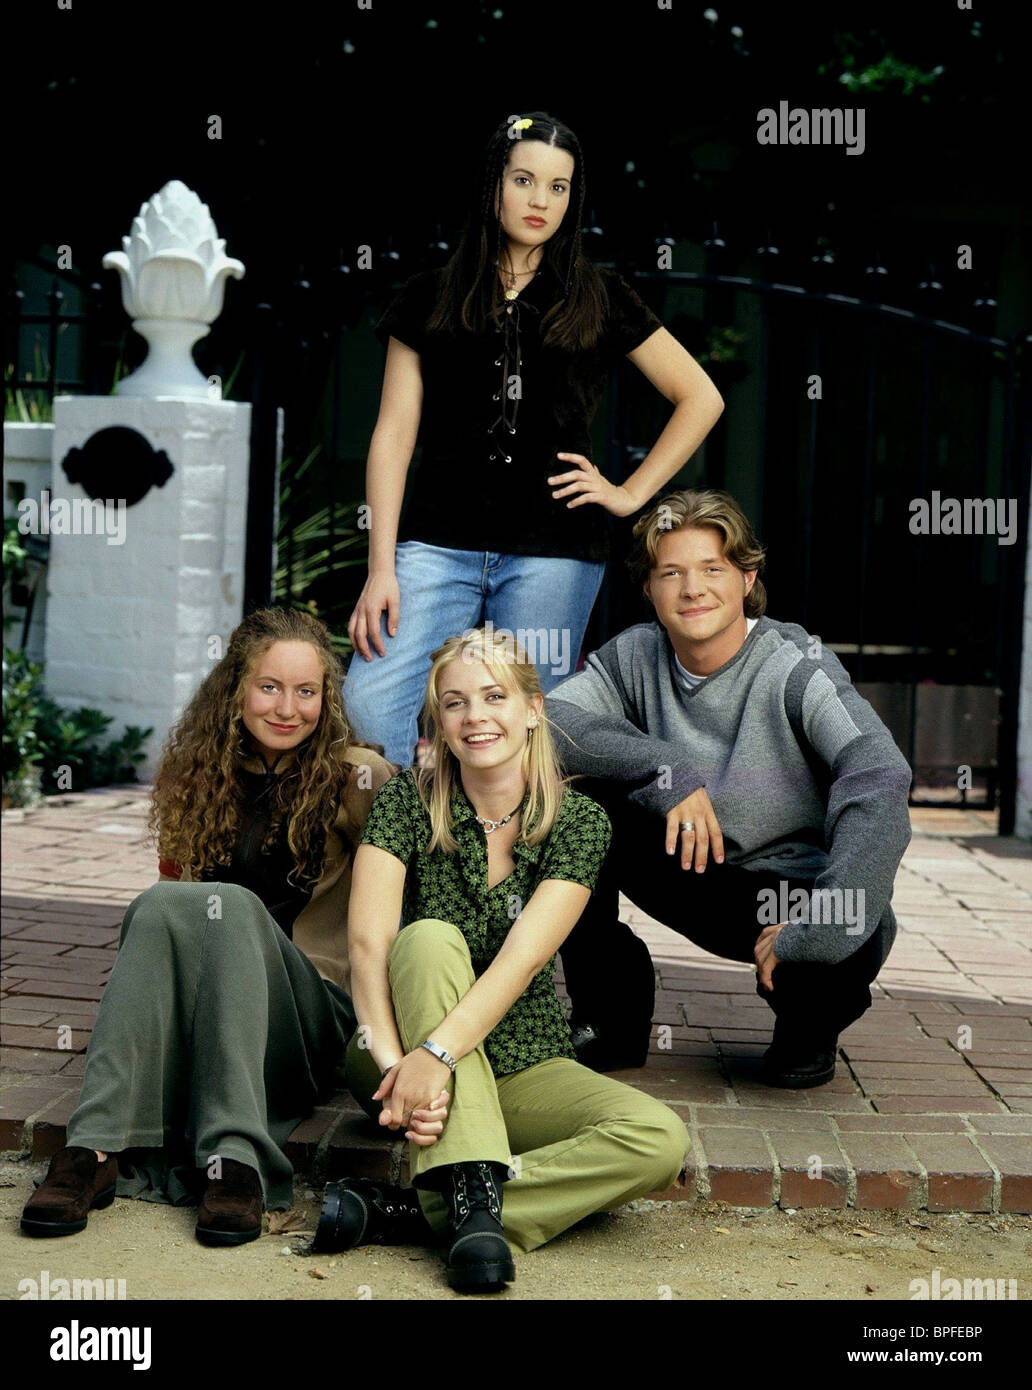 Jenna Leigh Green Melissa Joan Hart Nate Richert Sabrina The Stock Photo Alamy Lindsay sloane, lake bell, angela sarafyan, lucy punch, michelle borth and martin starr. jenna leigh green melissa joan hart nate richert sabrina the stock photo alamy